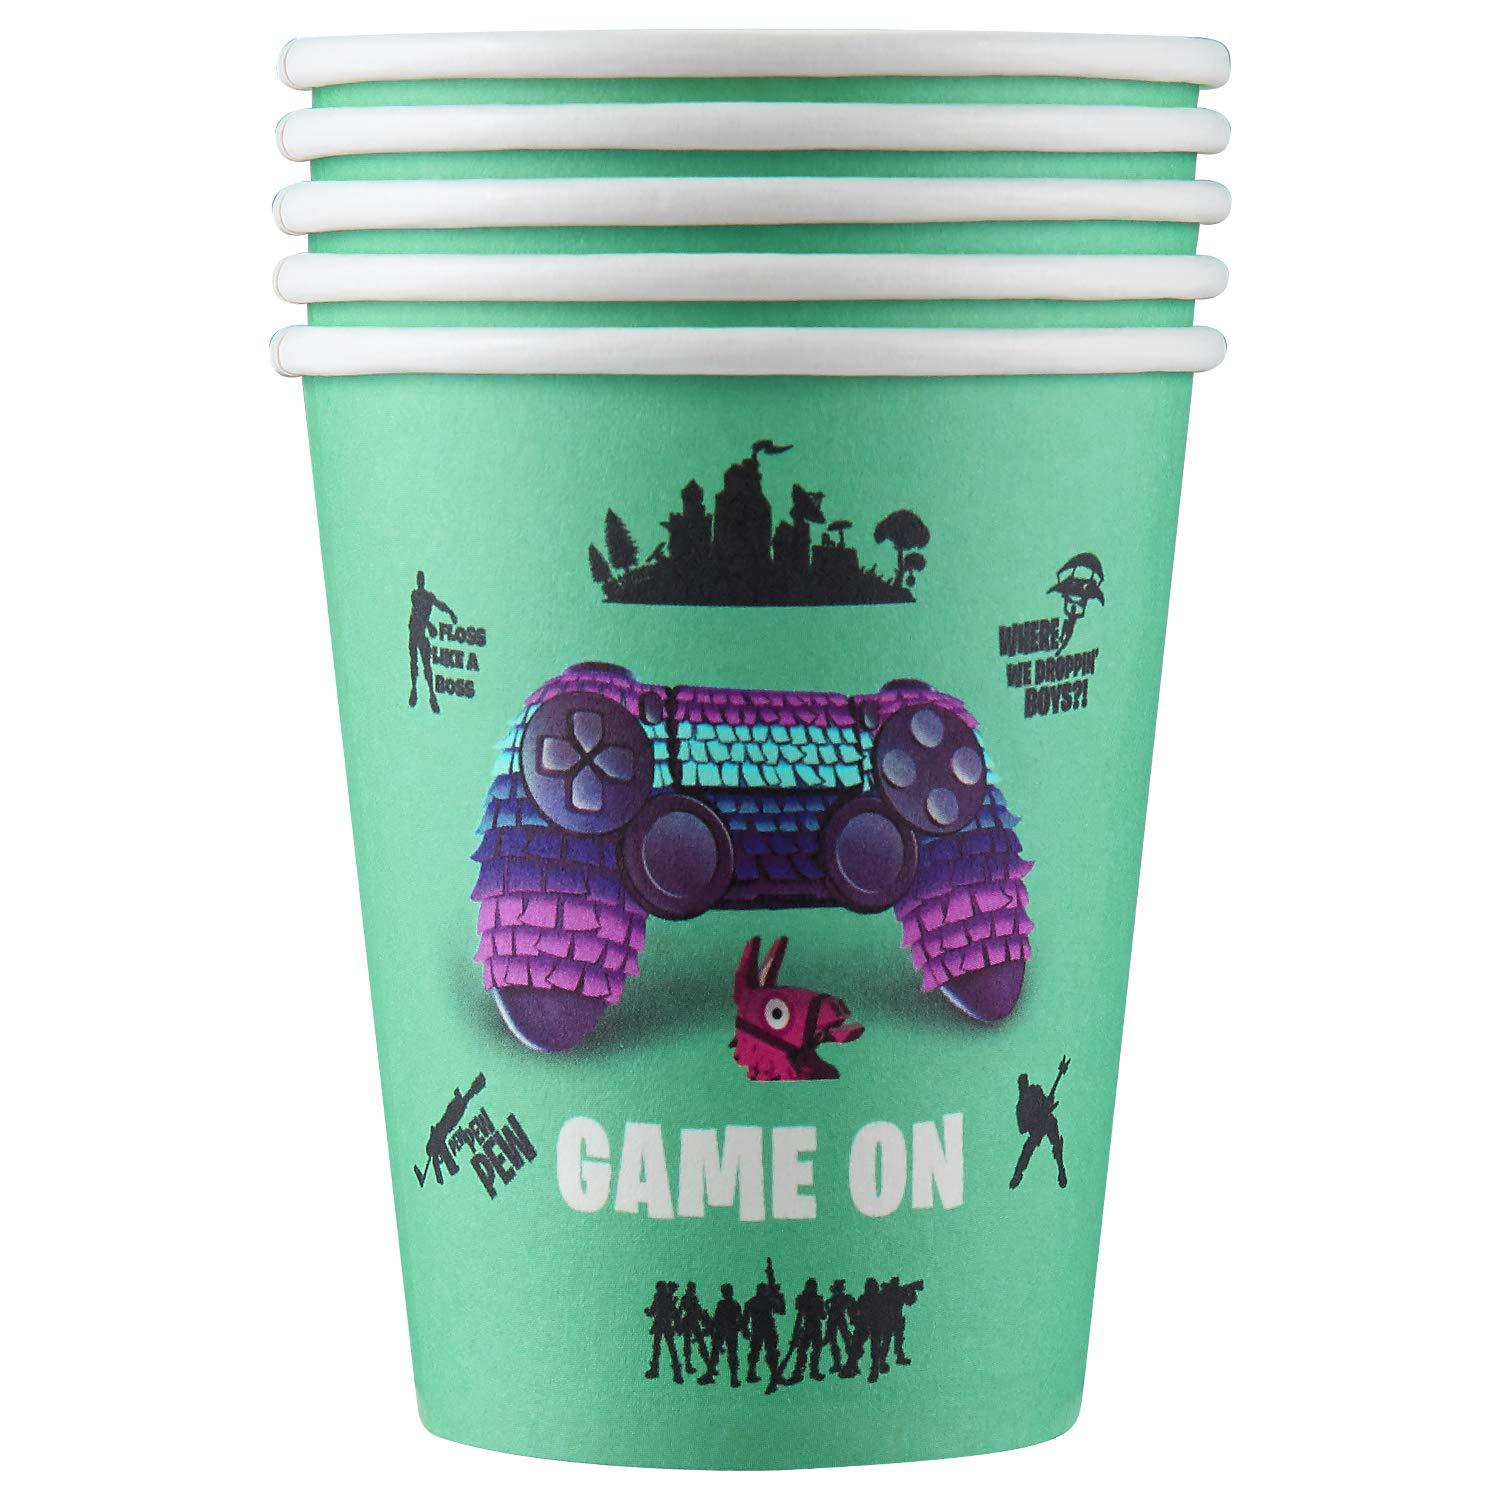 Game theme birthday party set game paper cup paper tray tablecloth flag game console handle